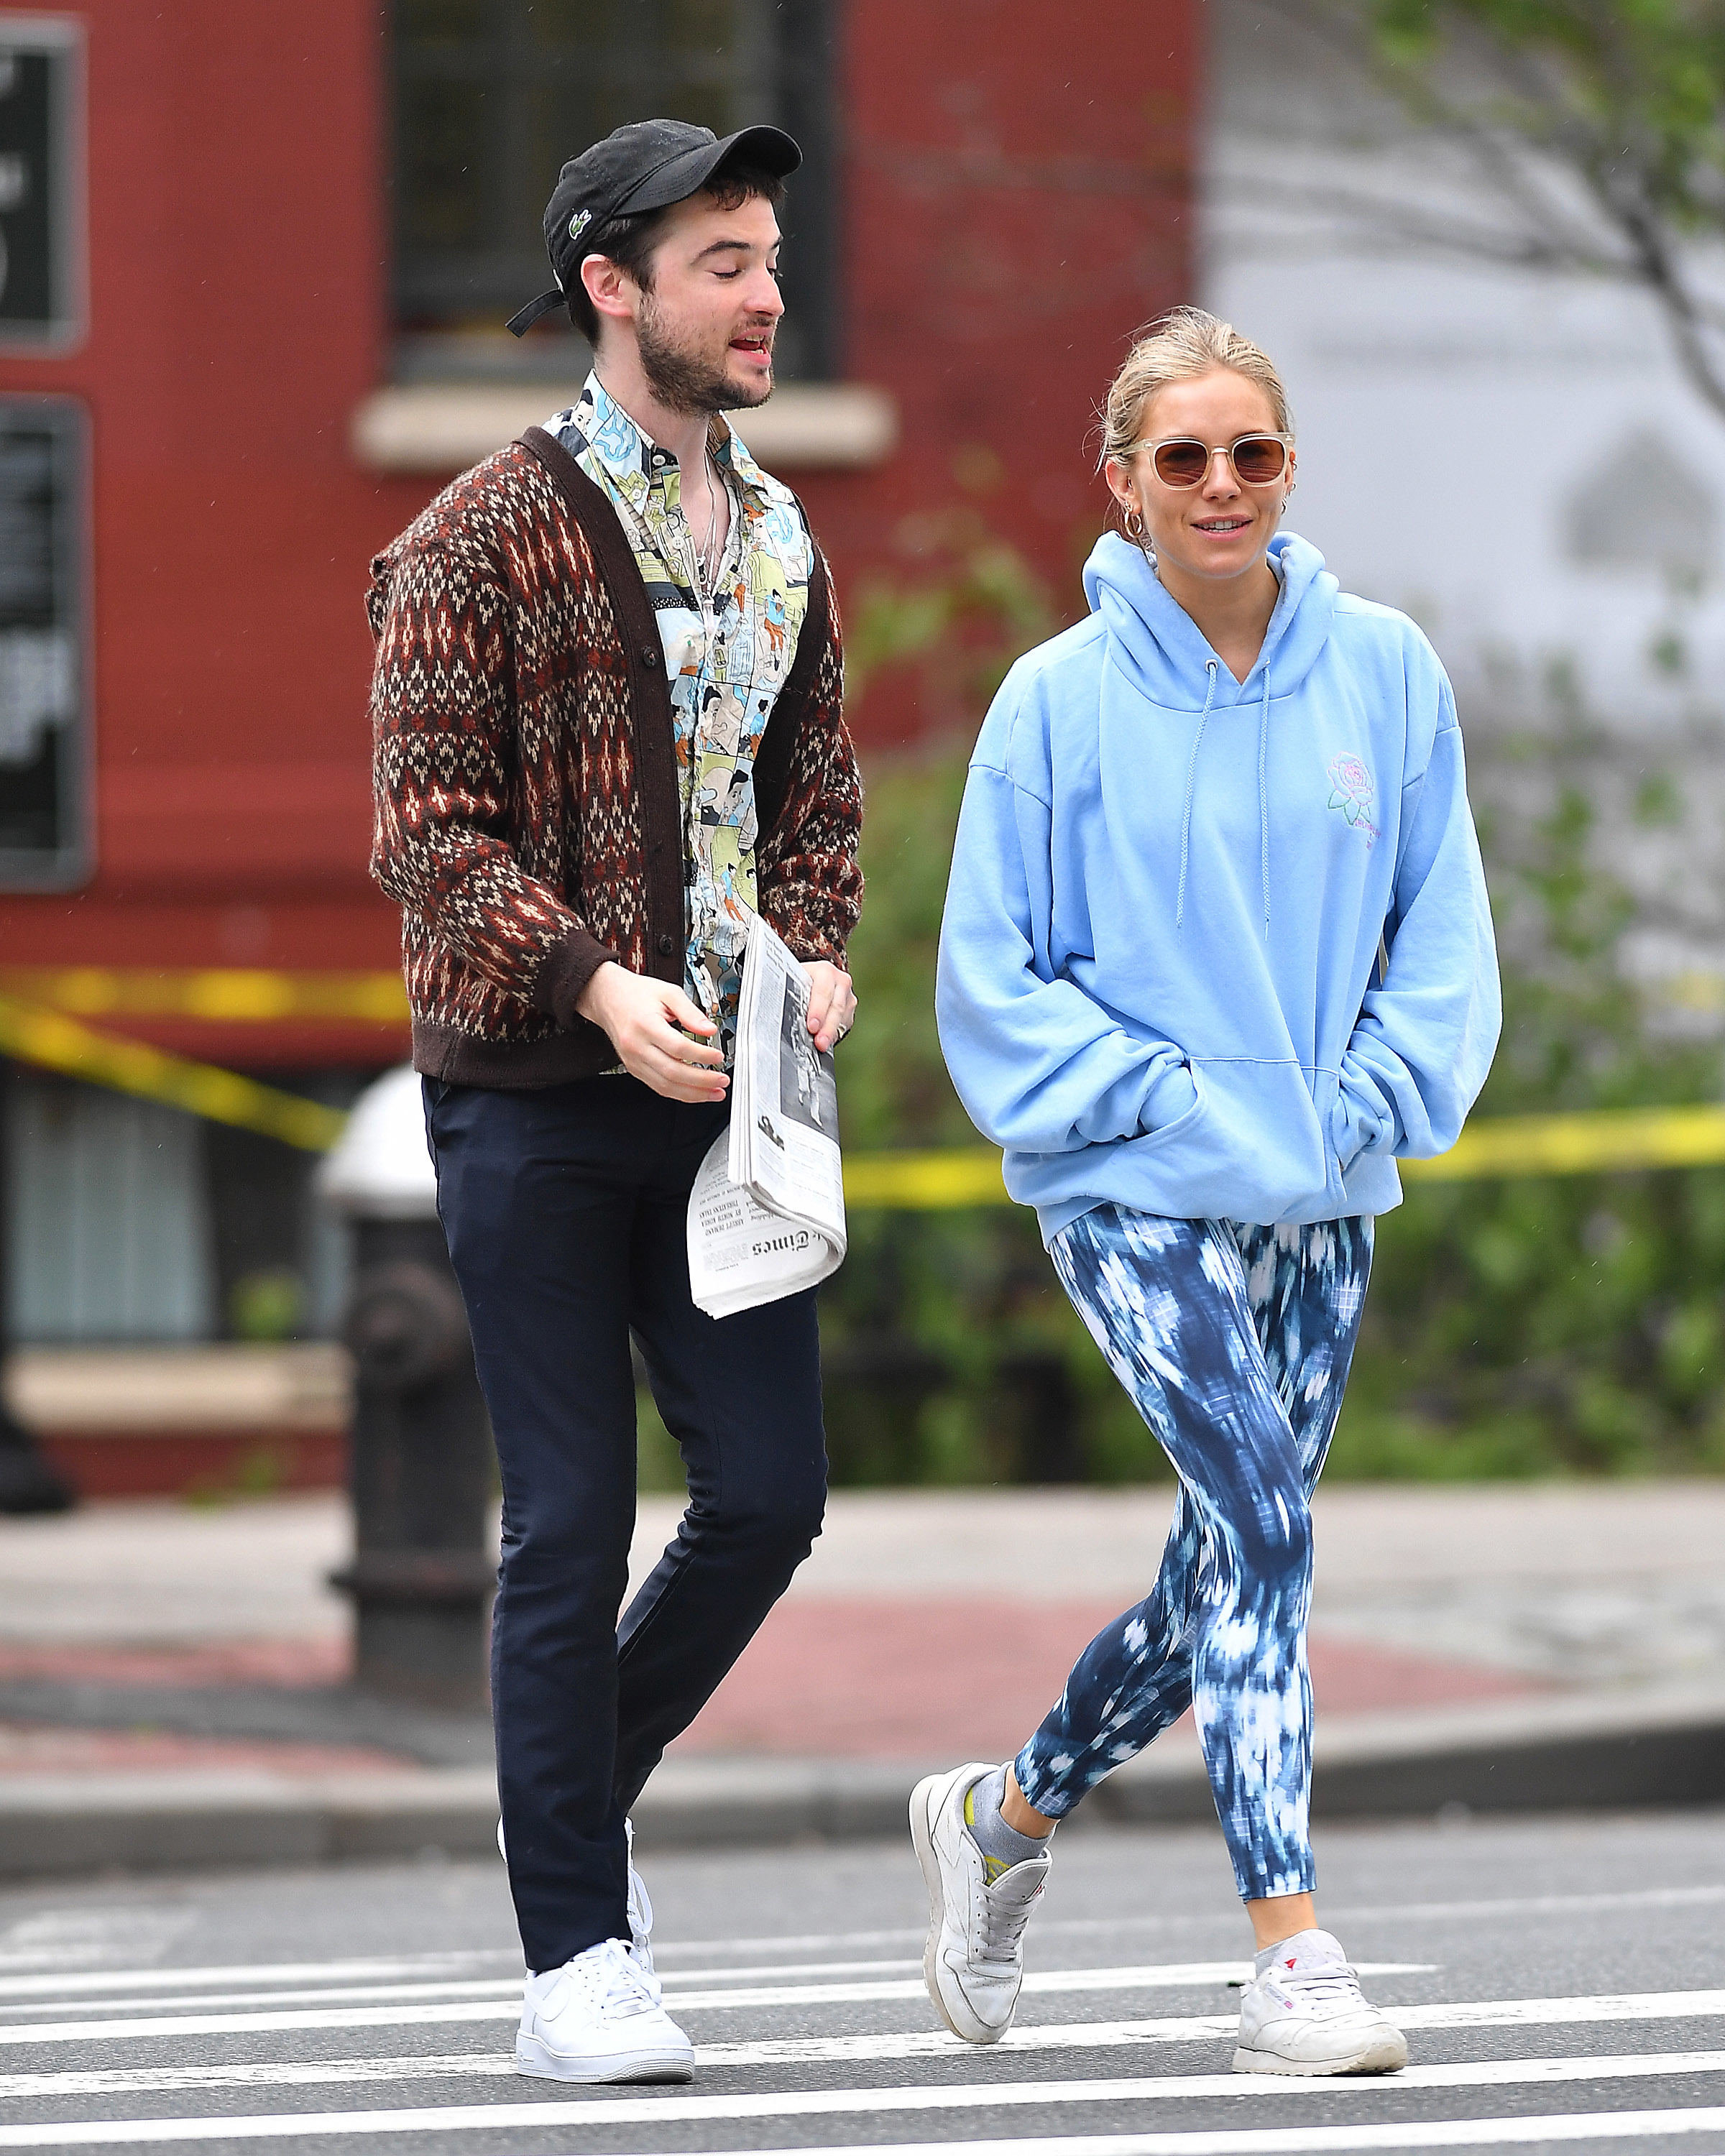 Sienna Miller and Tom Sturridge showed us what co parenting goals are as they were seen catching up while walking around New York City on May 16, 2018.